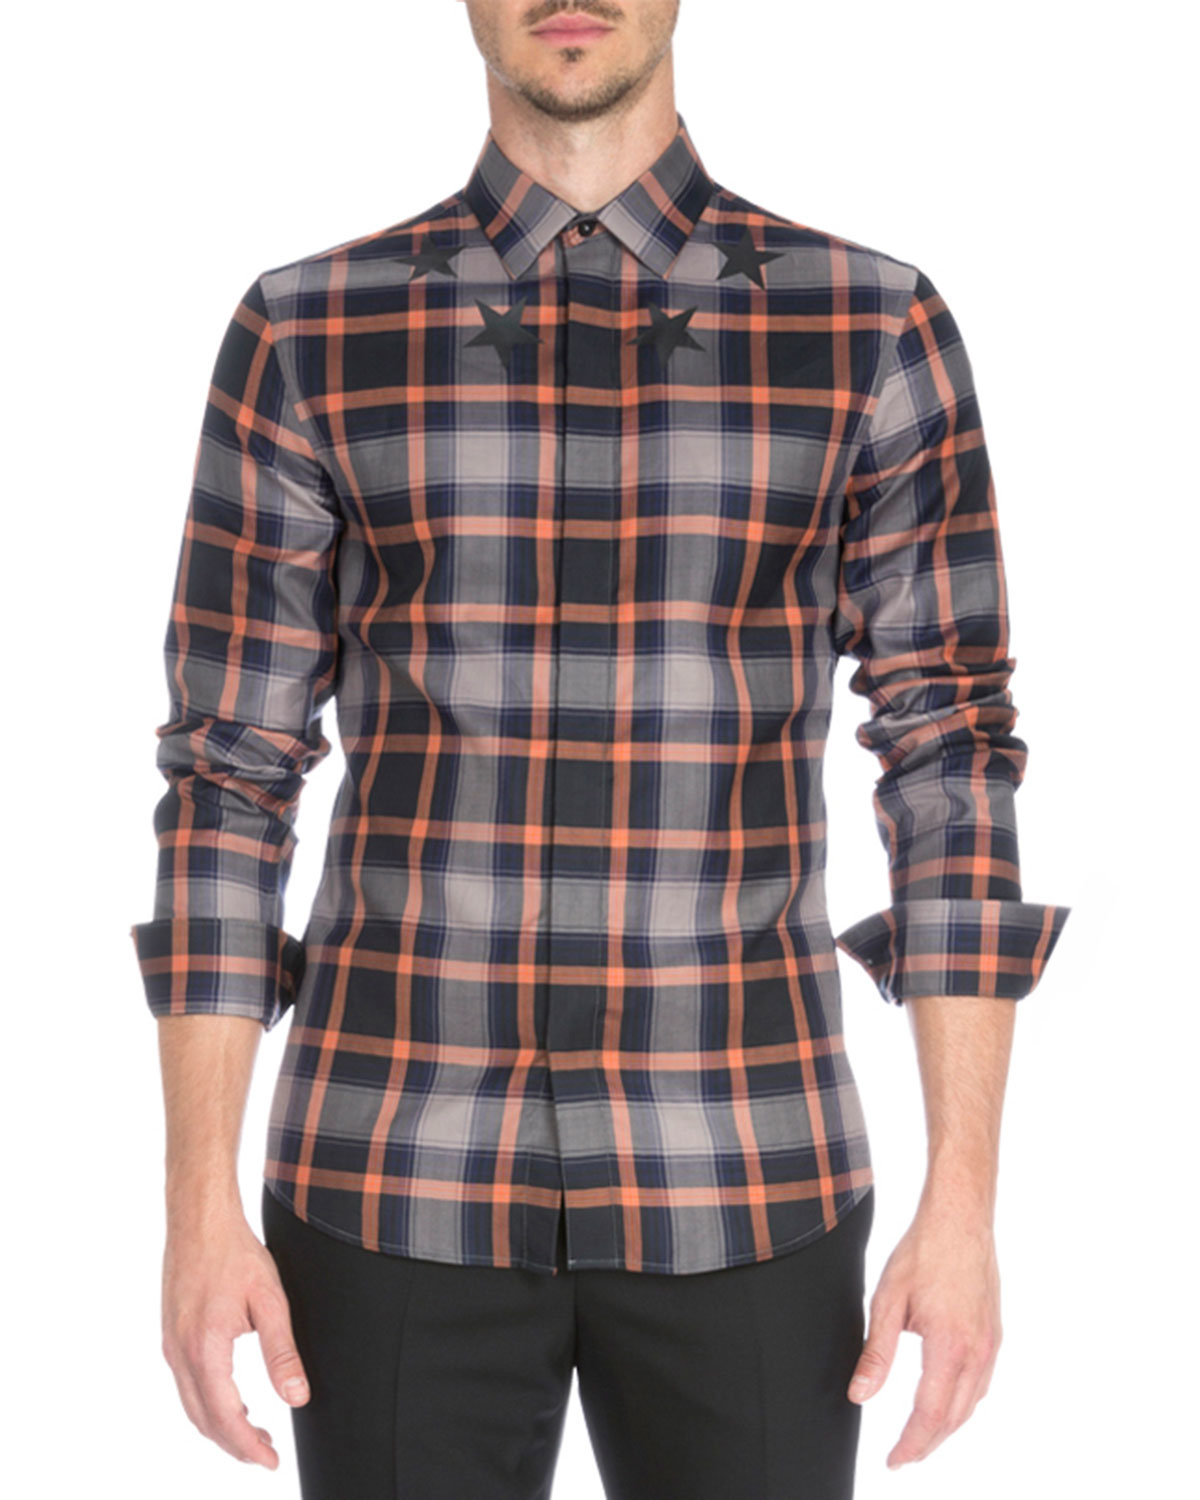 Givenchy Plaid With Star Print Woven Shirt In Orange For